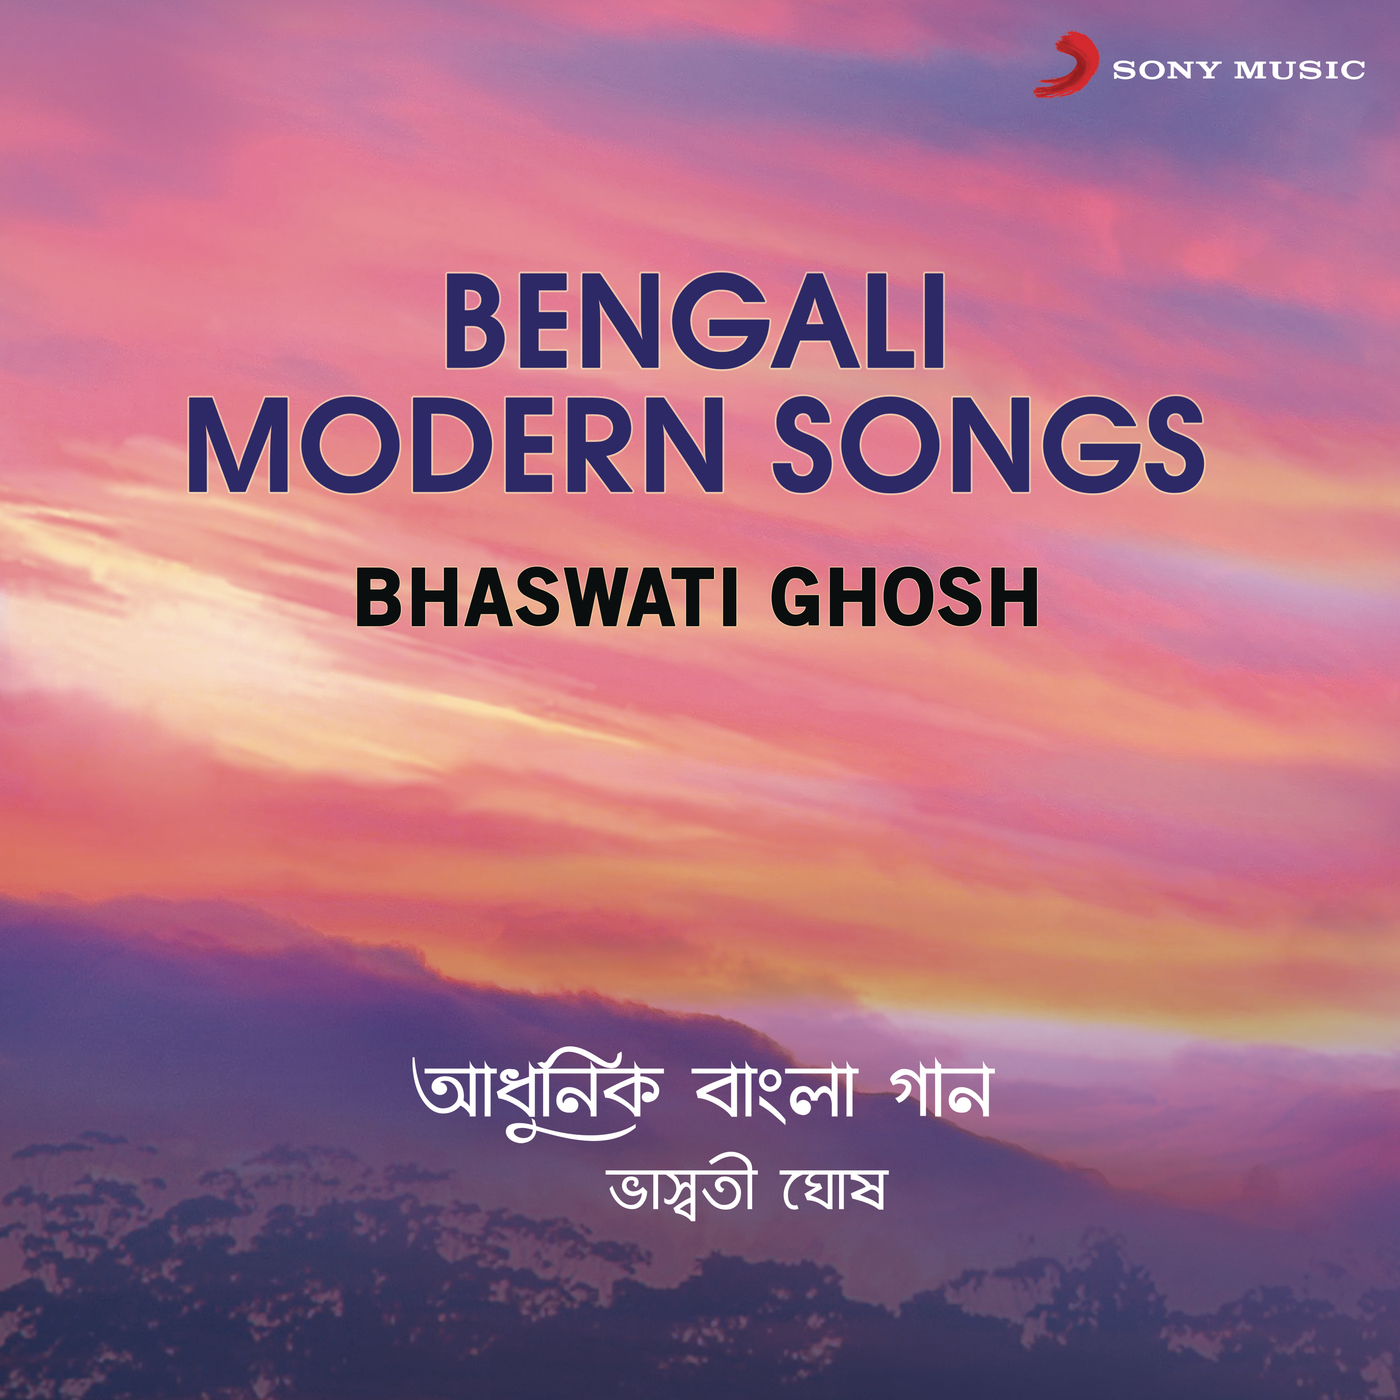 Bengali Modern Songs - Bhaswati Ghosh